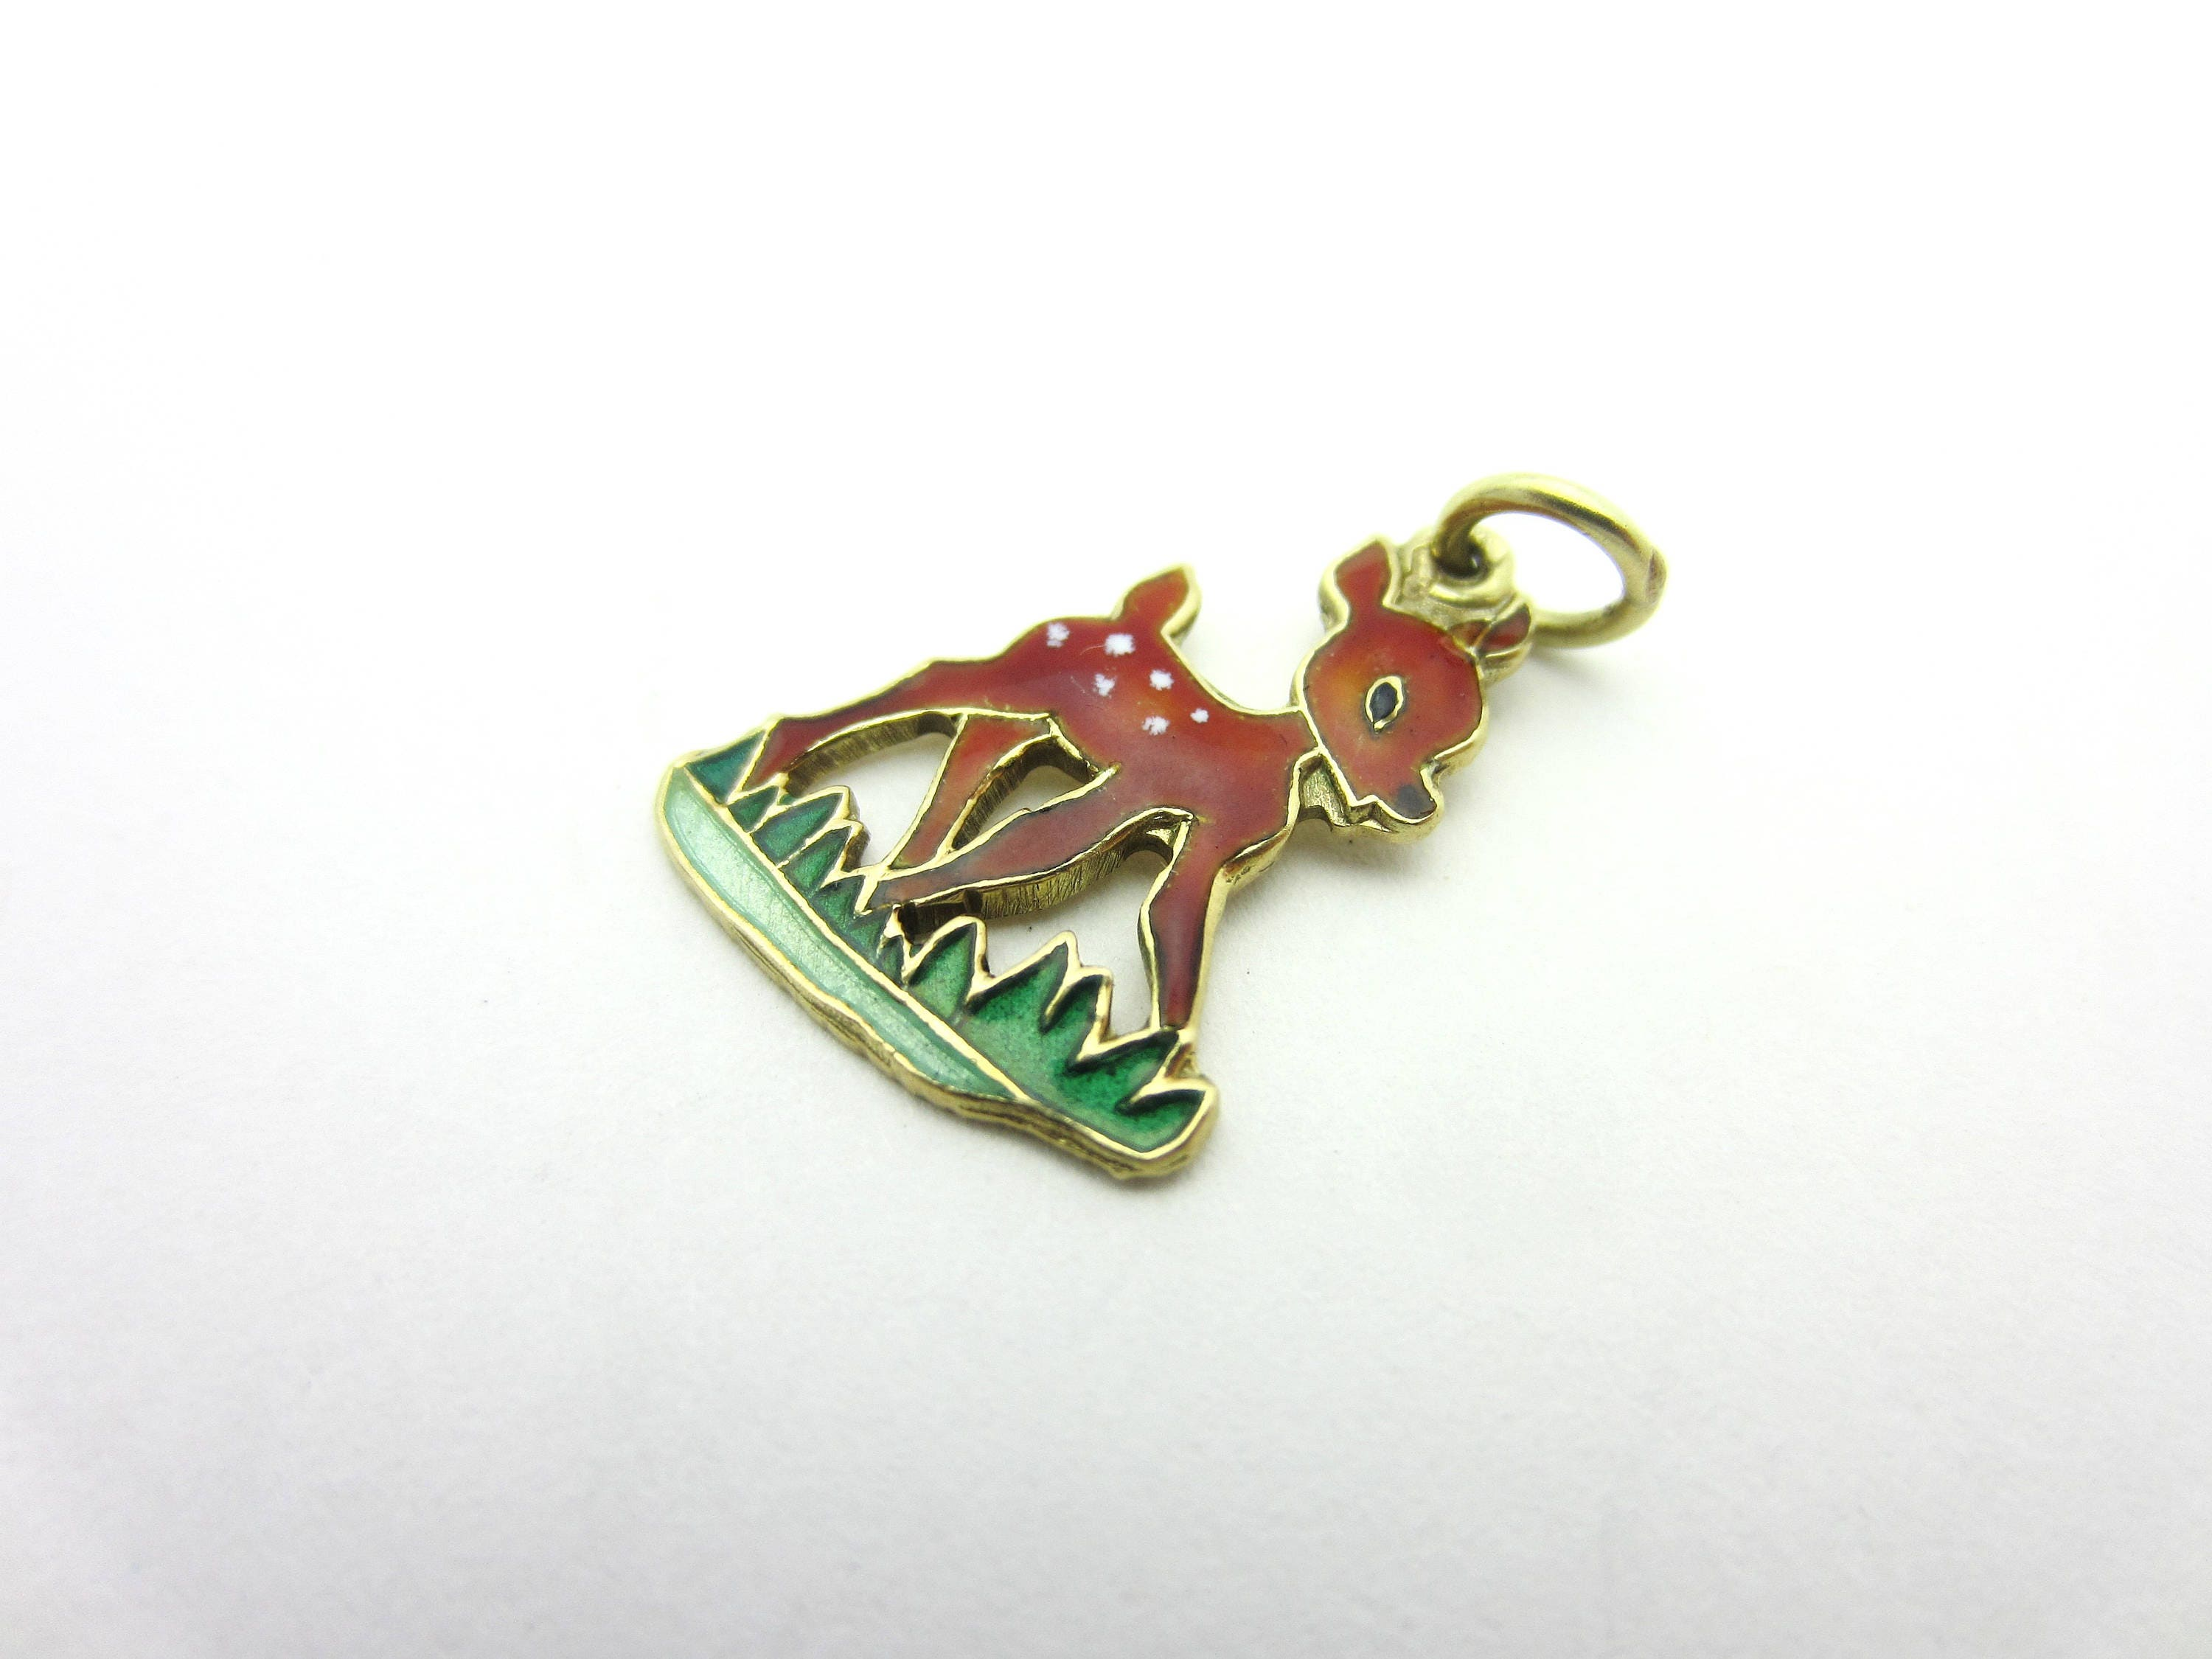 s original bambi necklace pendant thumbnail img candy products buckingham online store deer